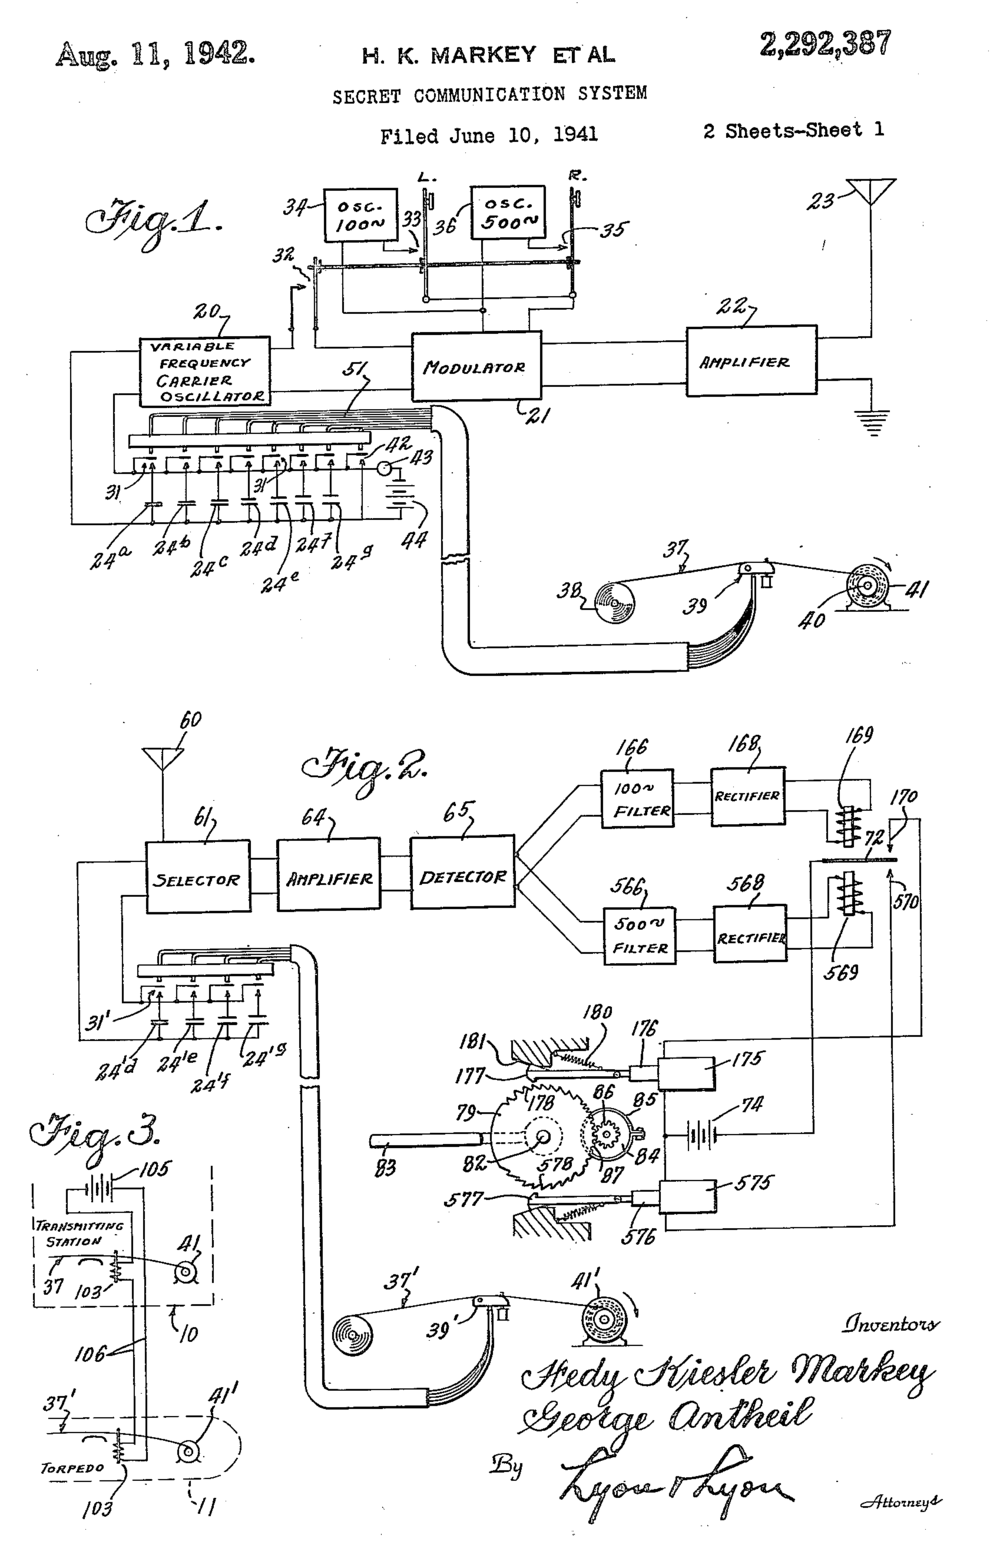 "[Figure 3] Figures 1-3 from Hedy Lamarr and George Antheil's patent for a ""Secret Communication System"" Image Source:  U.S. Patent No. US2292387 A     [6] ."